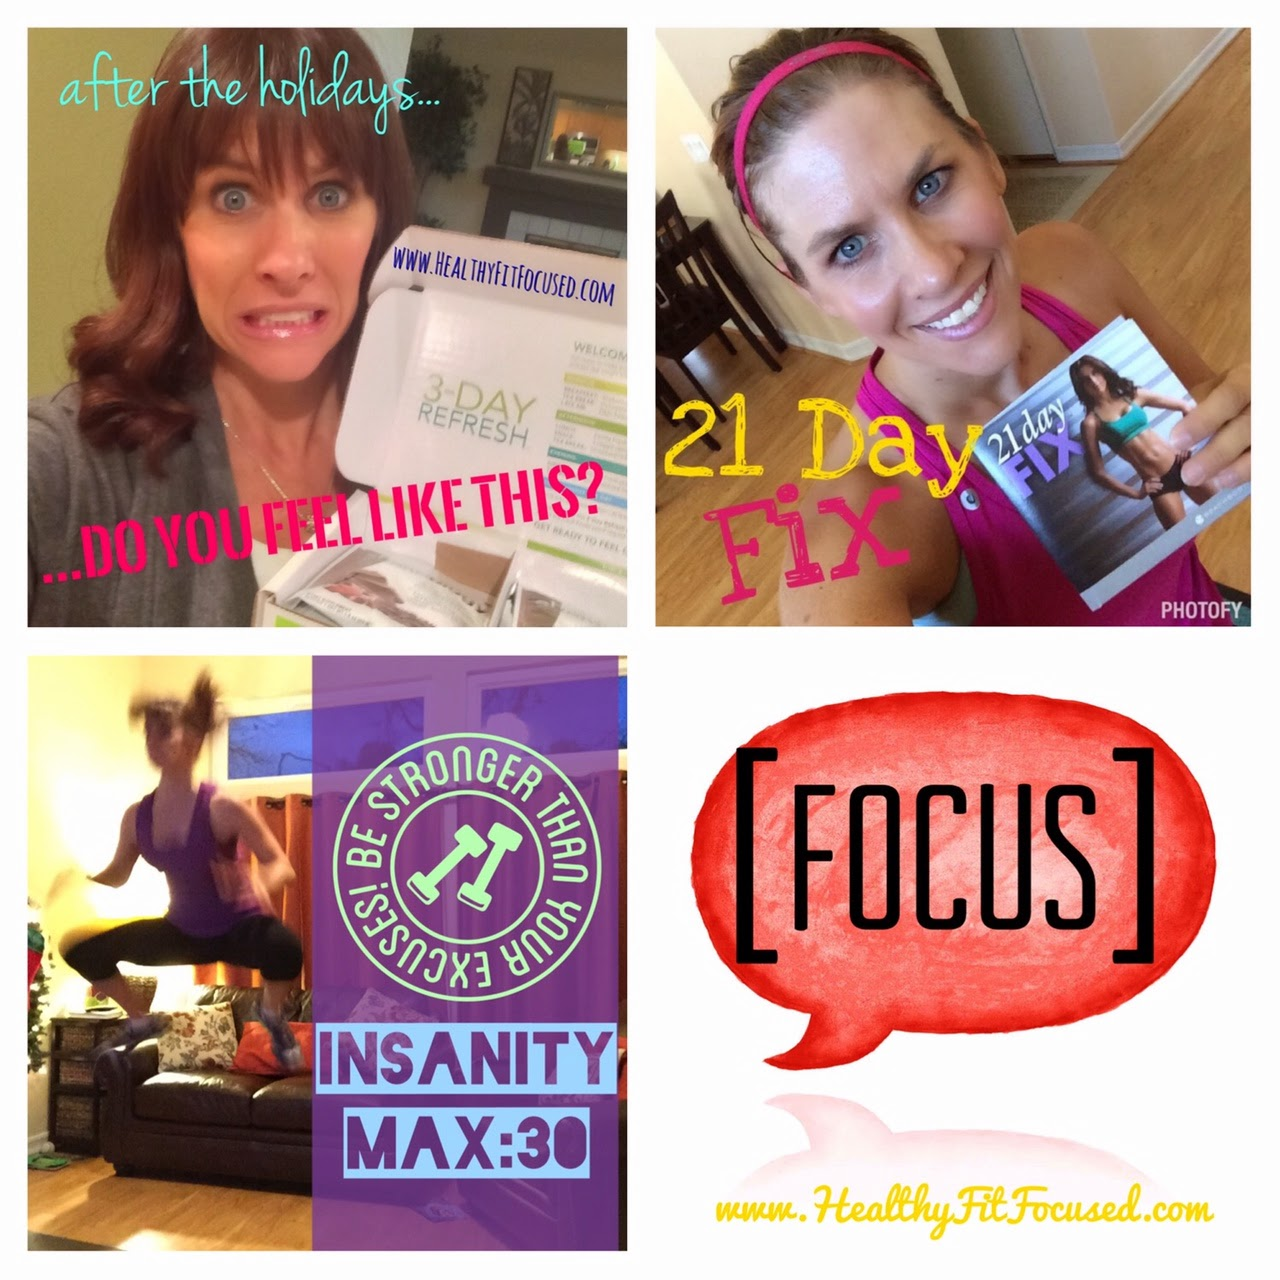 January Challenge Pack Promotions, Insanity Max:30, 3 Day Refresh, 21 Day Fix on sale!!